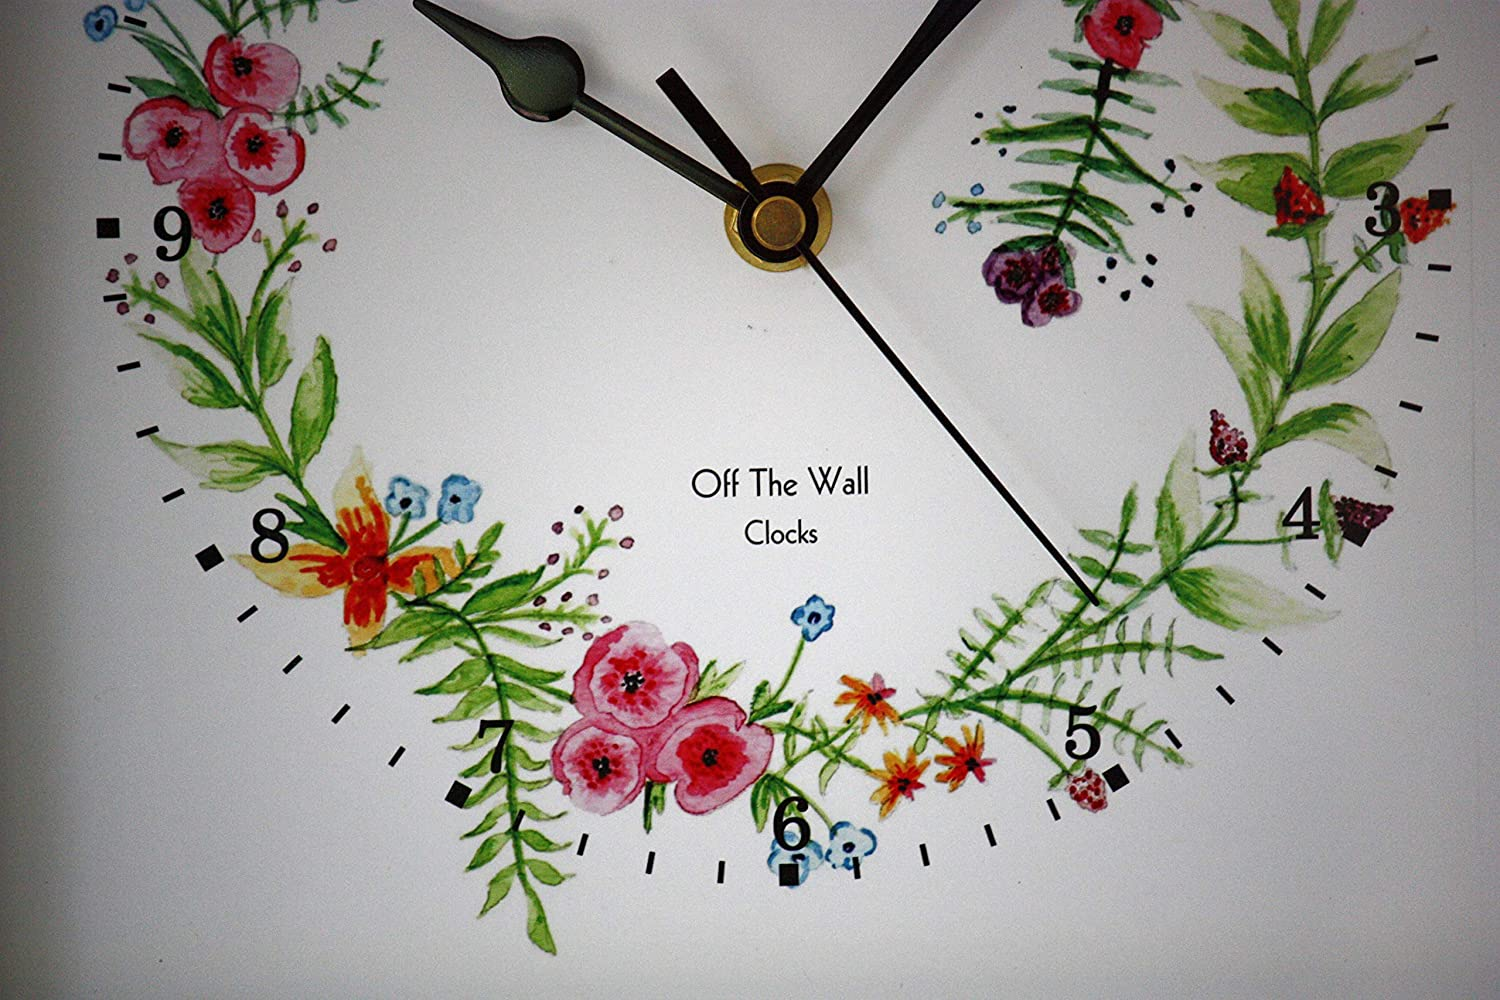 New 25cm Modern Floral Wall Clock White Country Kitchen Flowers Farmhouse Gift Handmade Products Home Kitchen